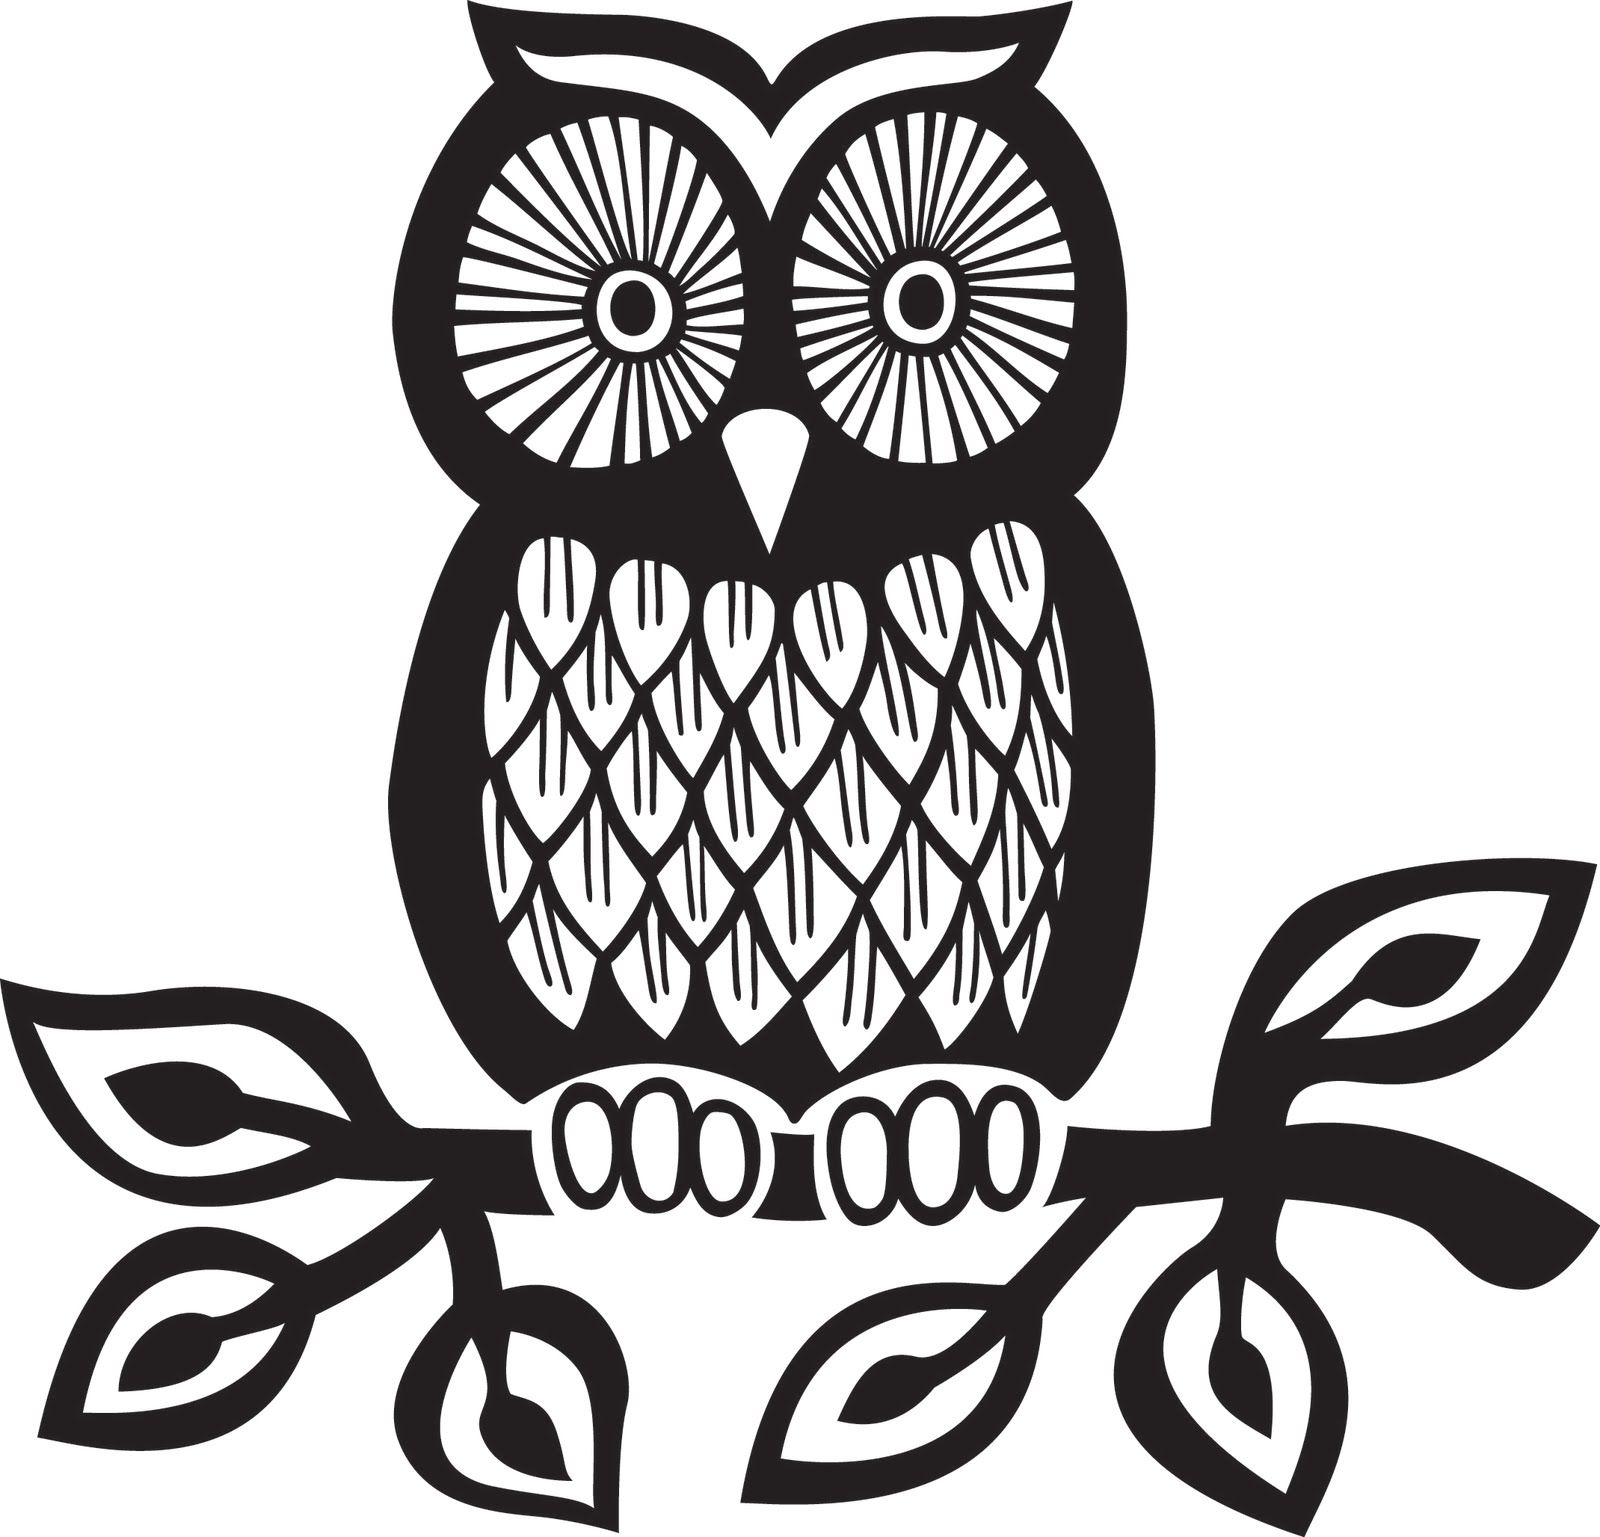 Cute Owl Drawings want to share with you my owl